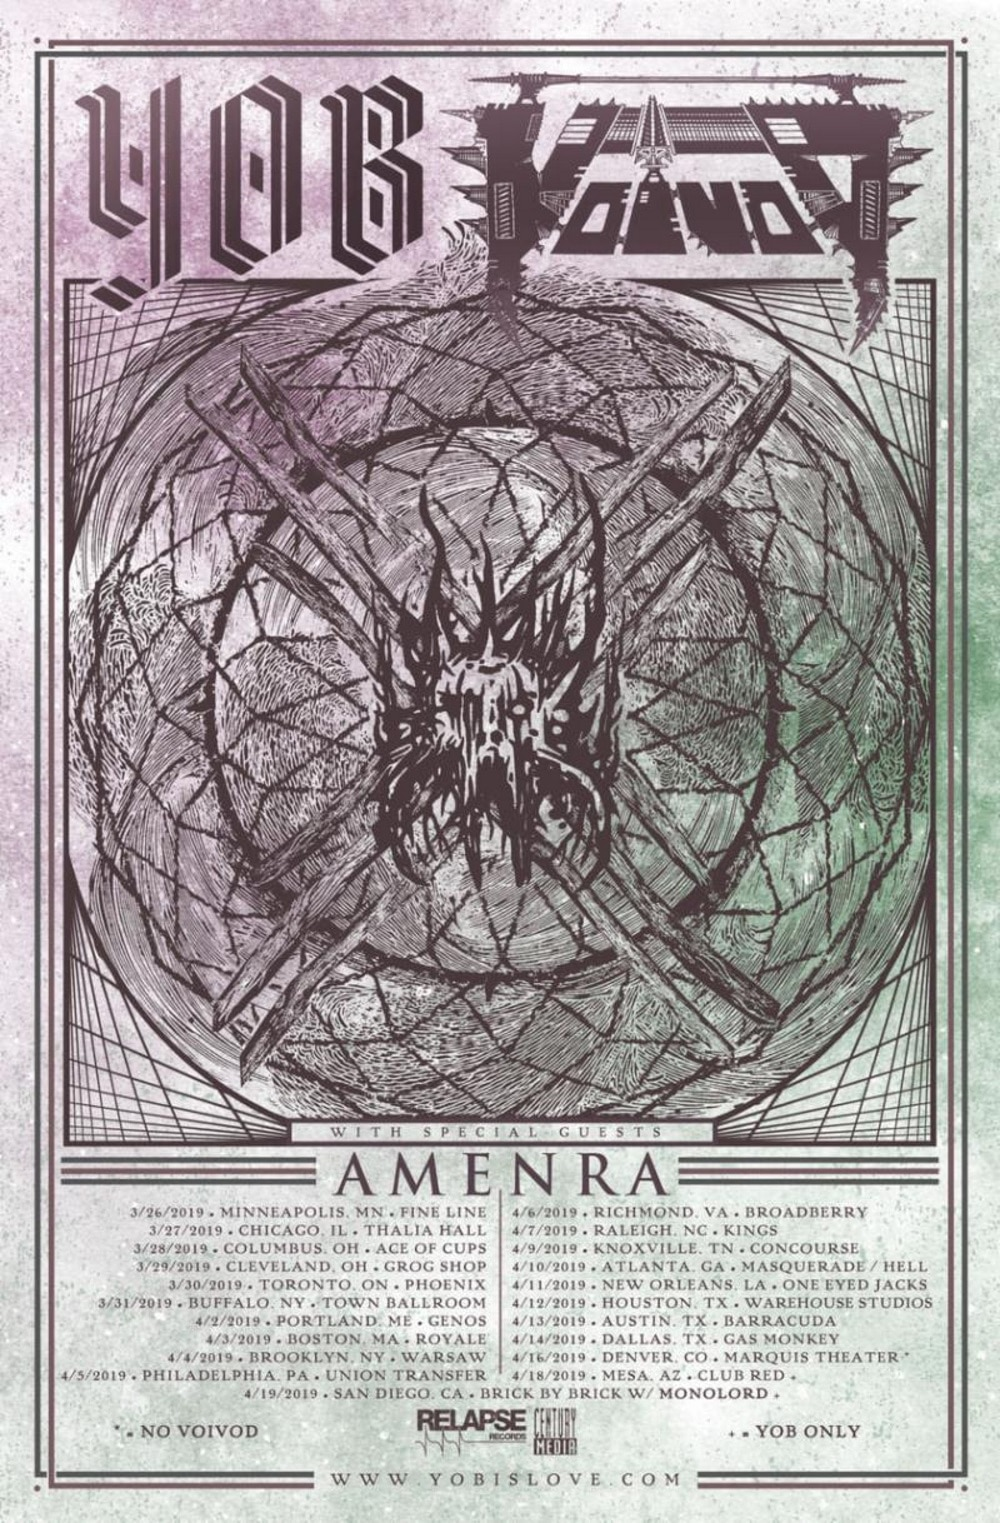 AMENRA tour